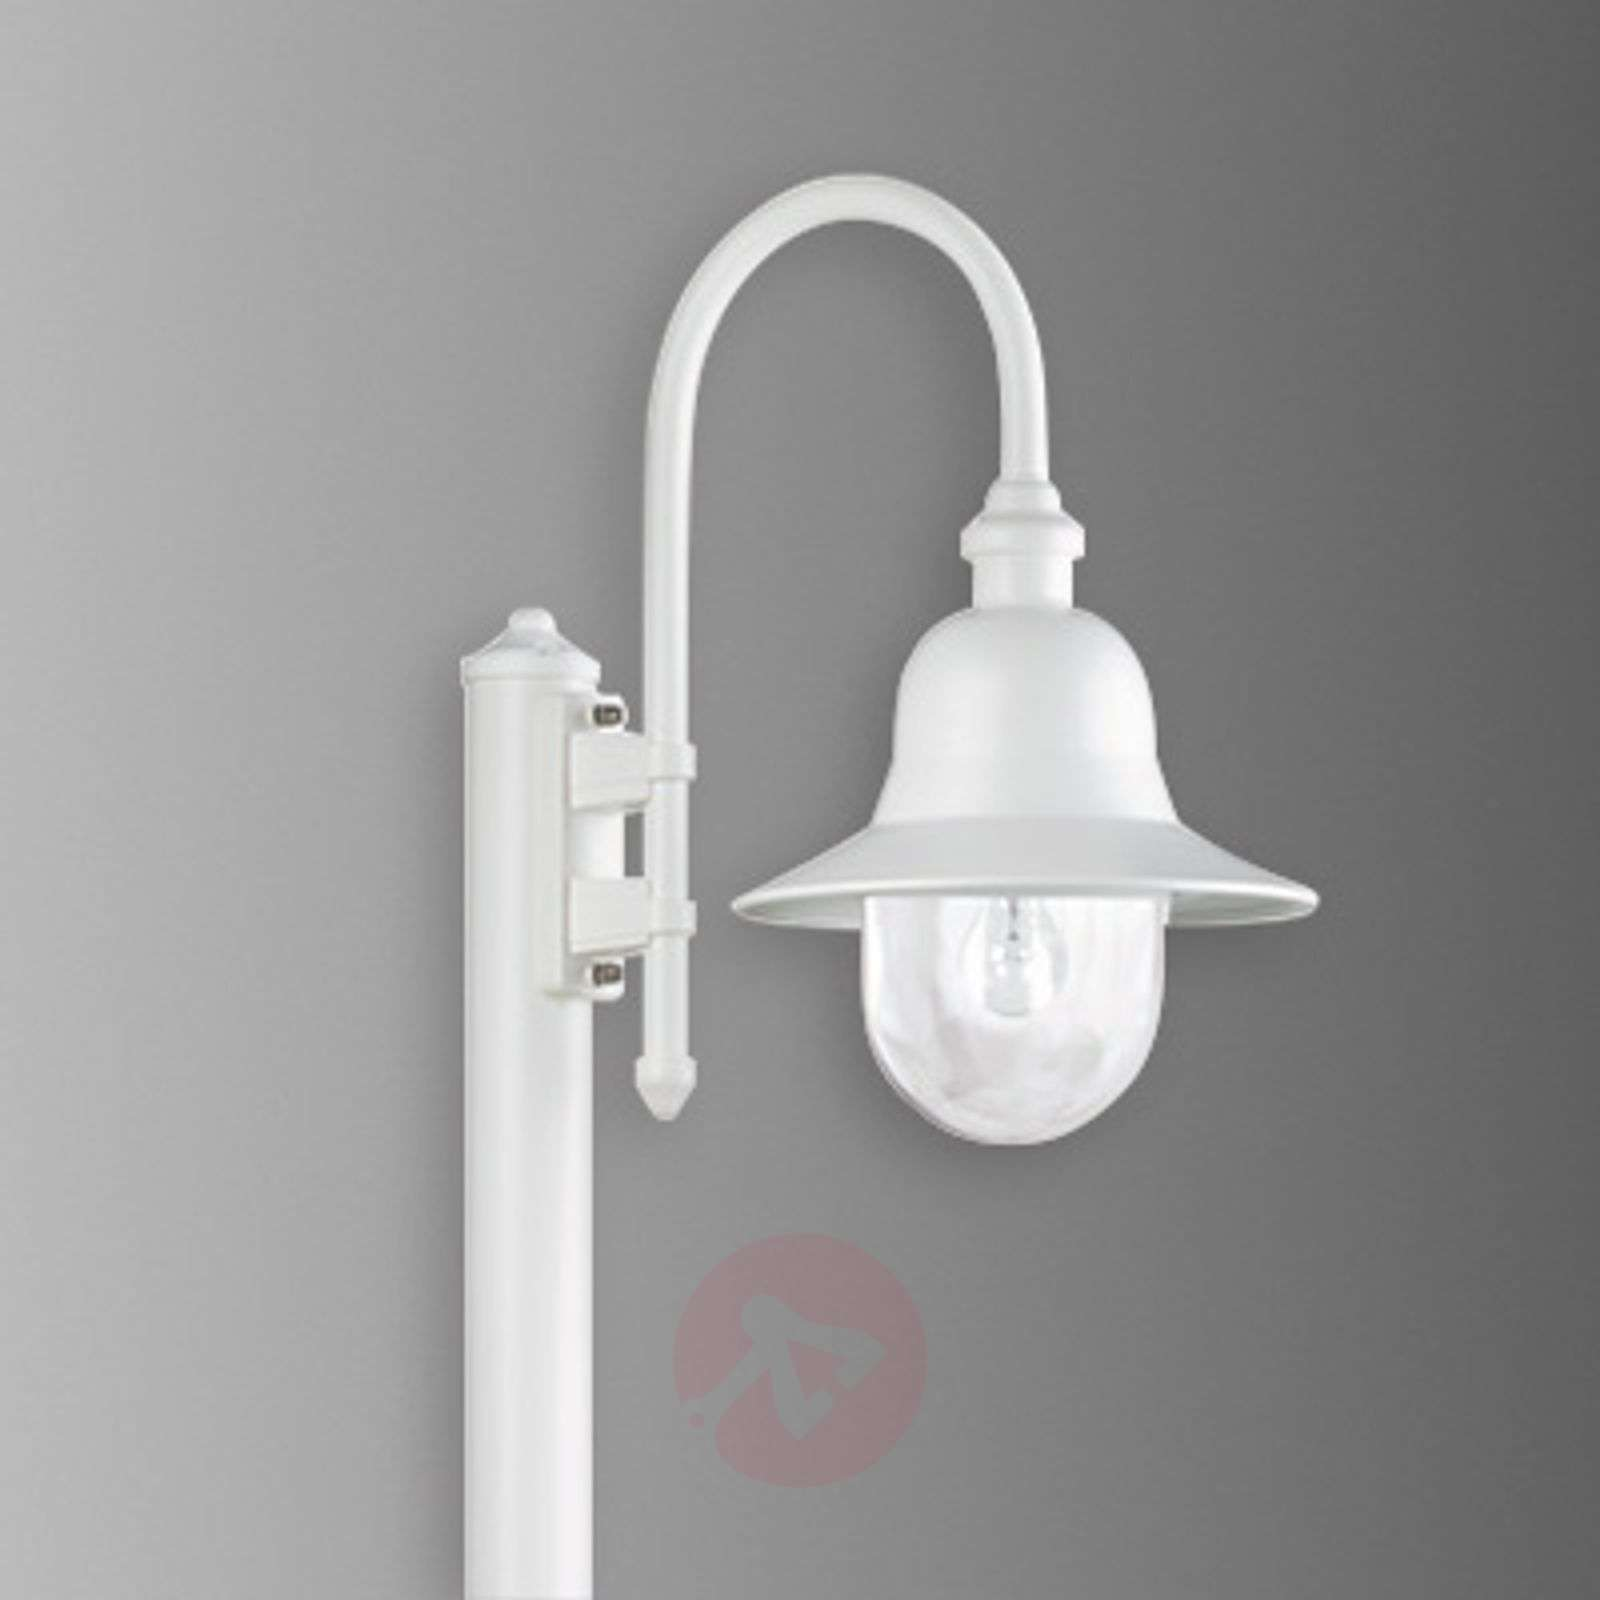 Path lamp Nios white-6068081-02